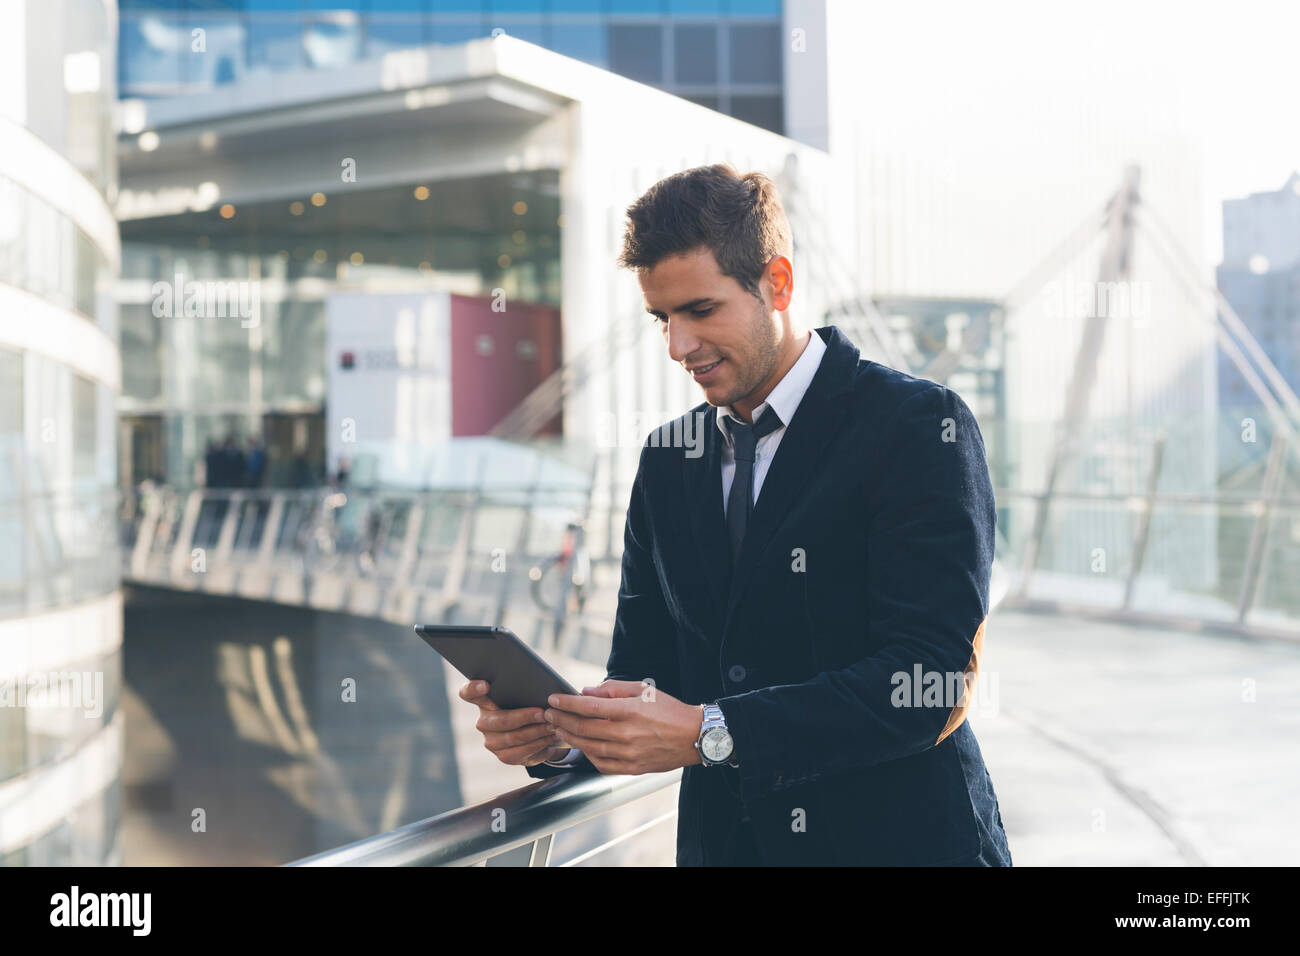 Businessman using a digital tablet - Stock Image